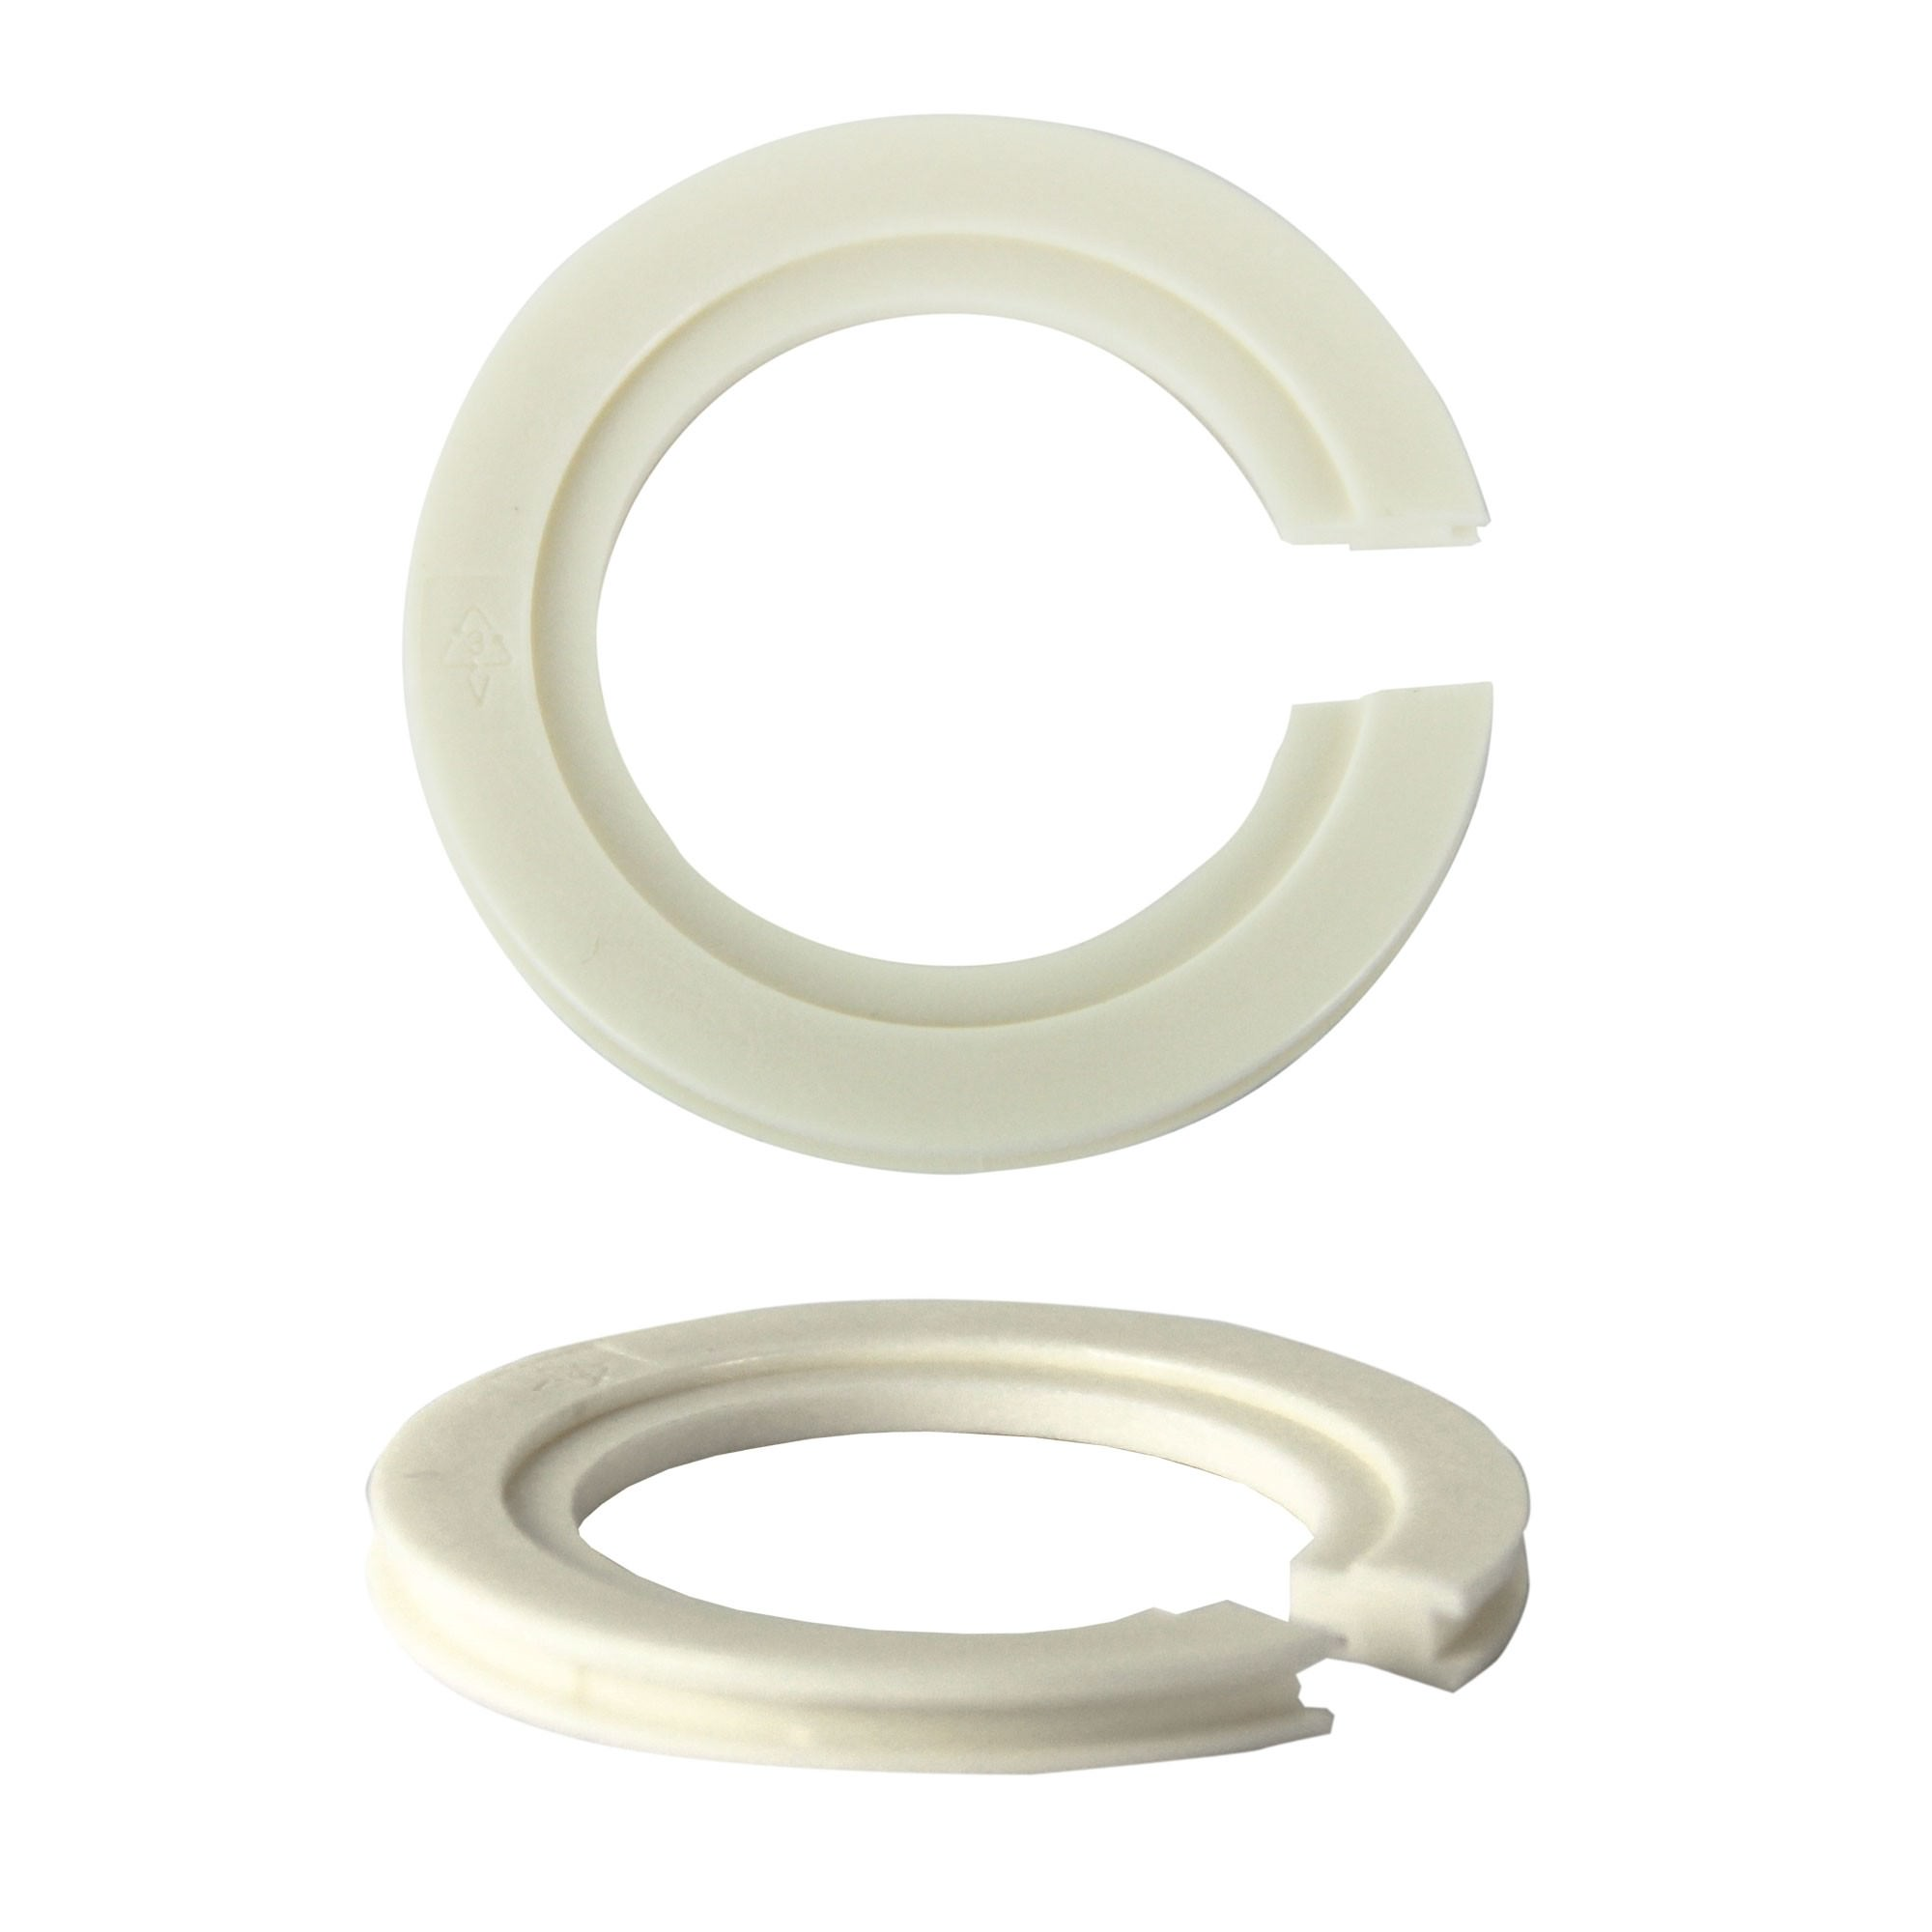 Oriel Lighting E27 to B22 Lampshade Adapter Ring